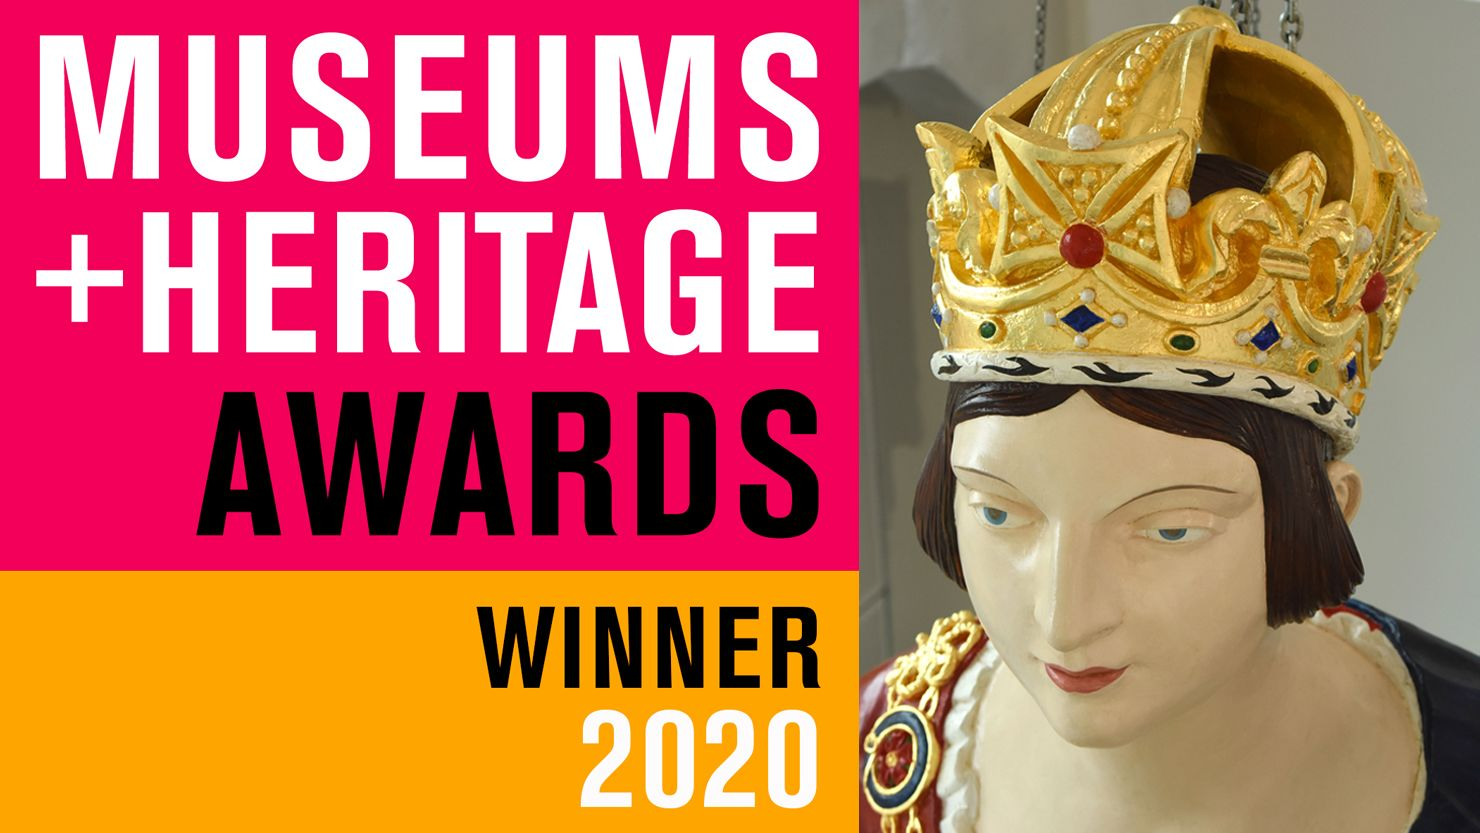 Figureheads project wins national award